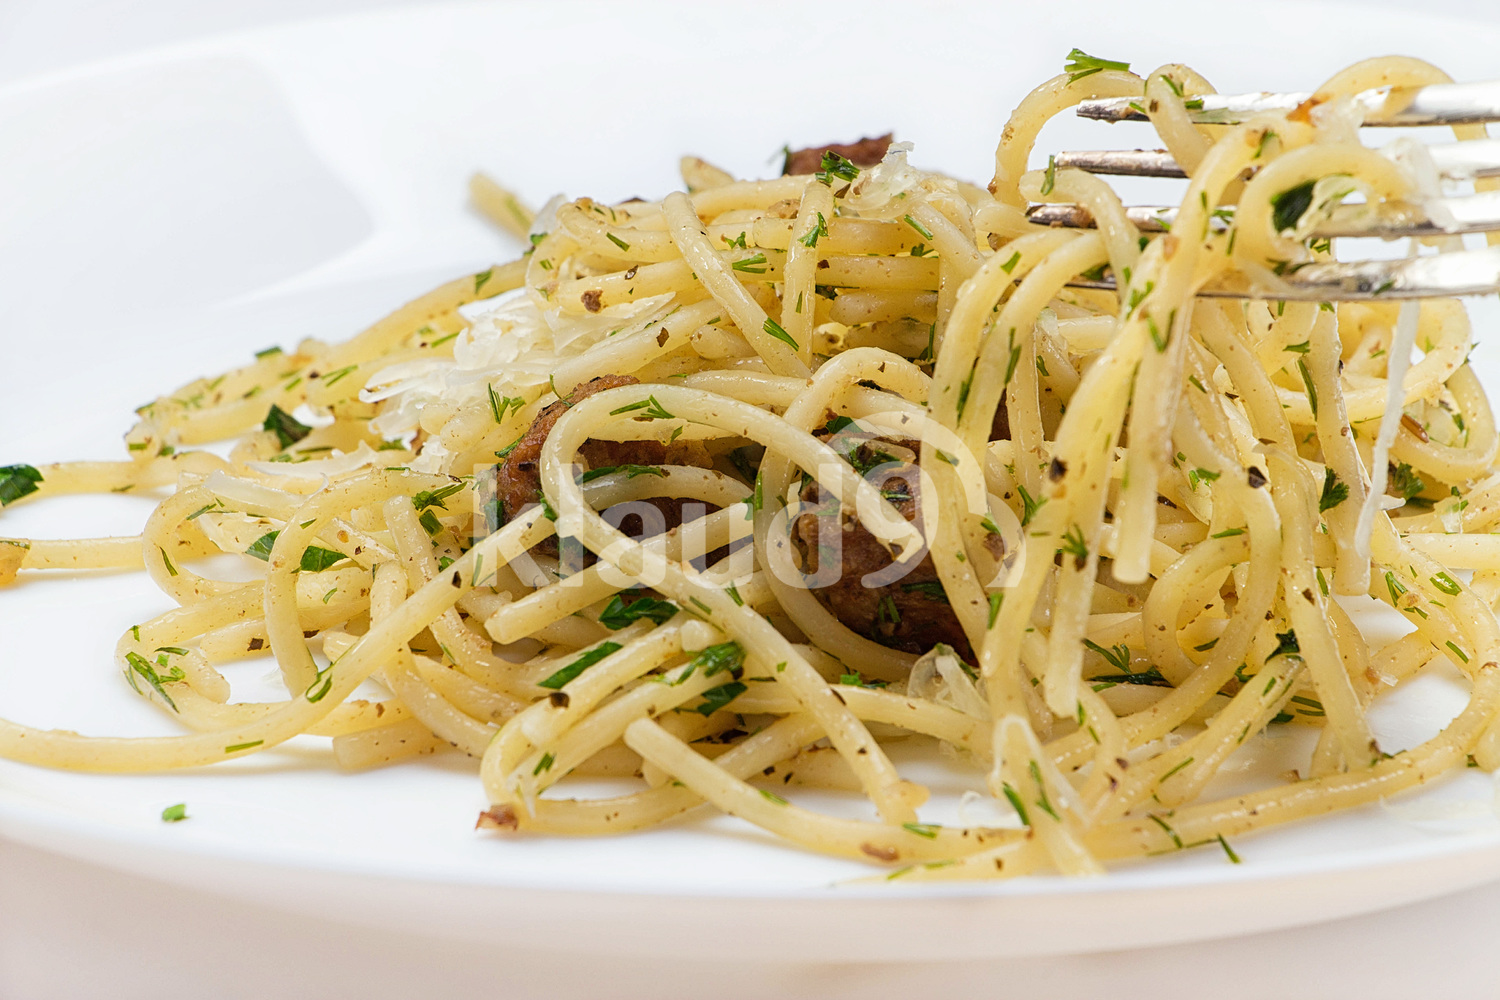 Spaghetti with meat, herbs and cheese